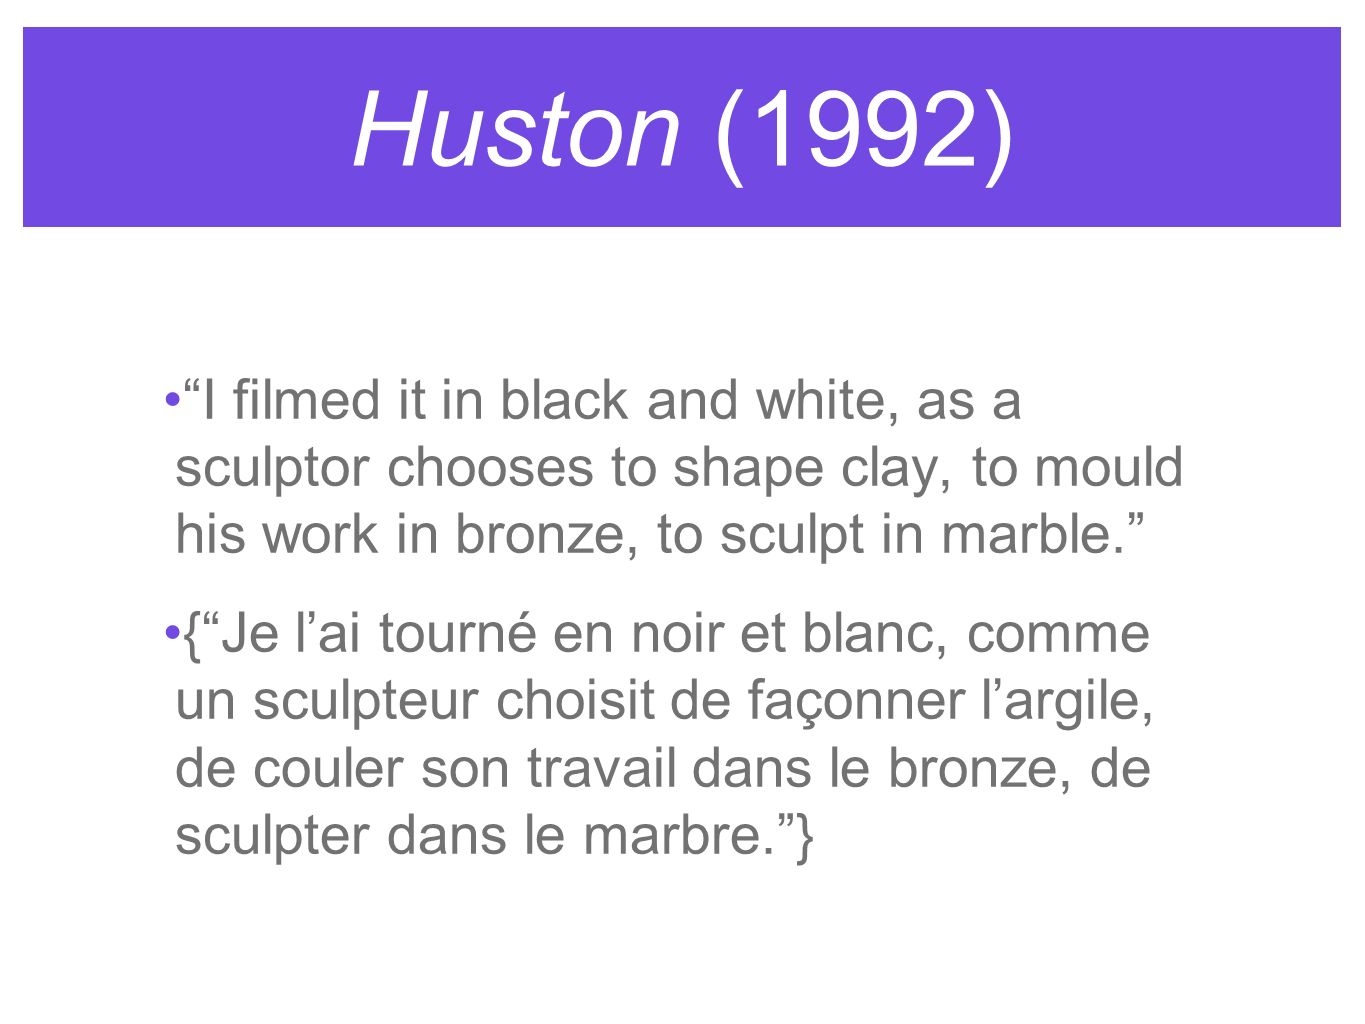 Huston (1992) I filmed it in black and white, as a sculptor chooses to shape clay, to mould his work in bronze, to sculpt in marble.